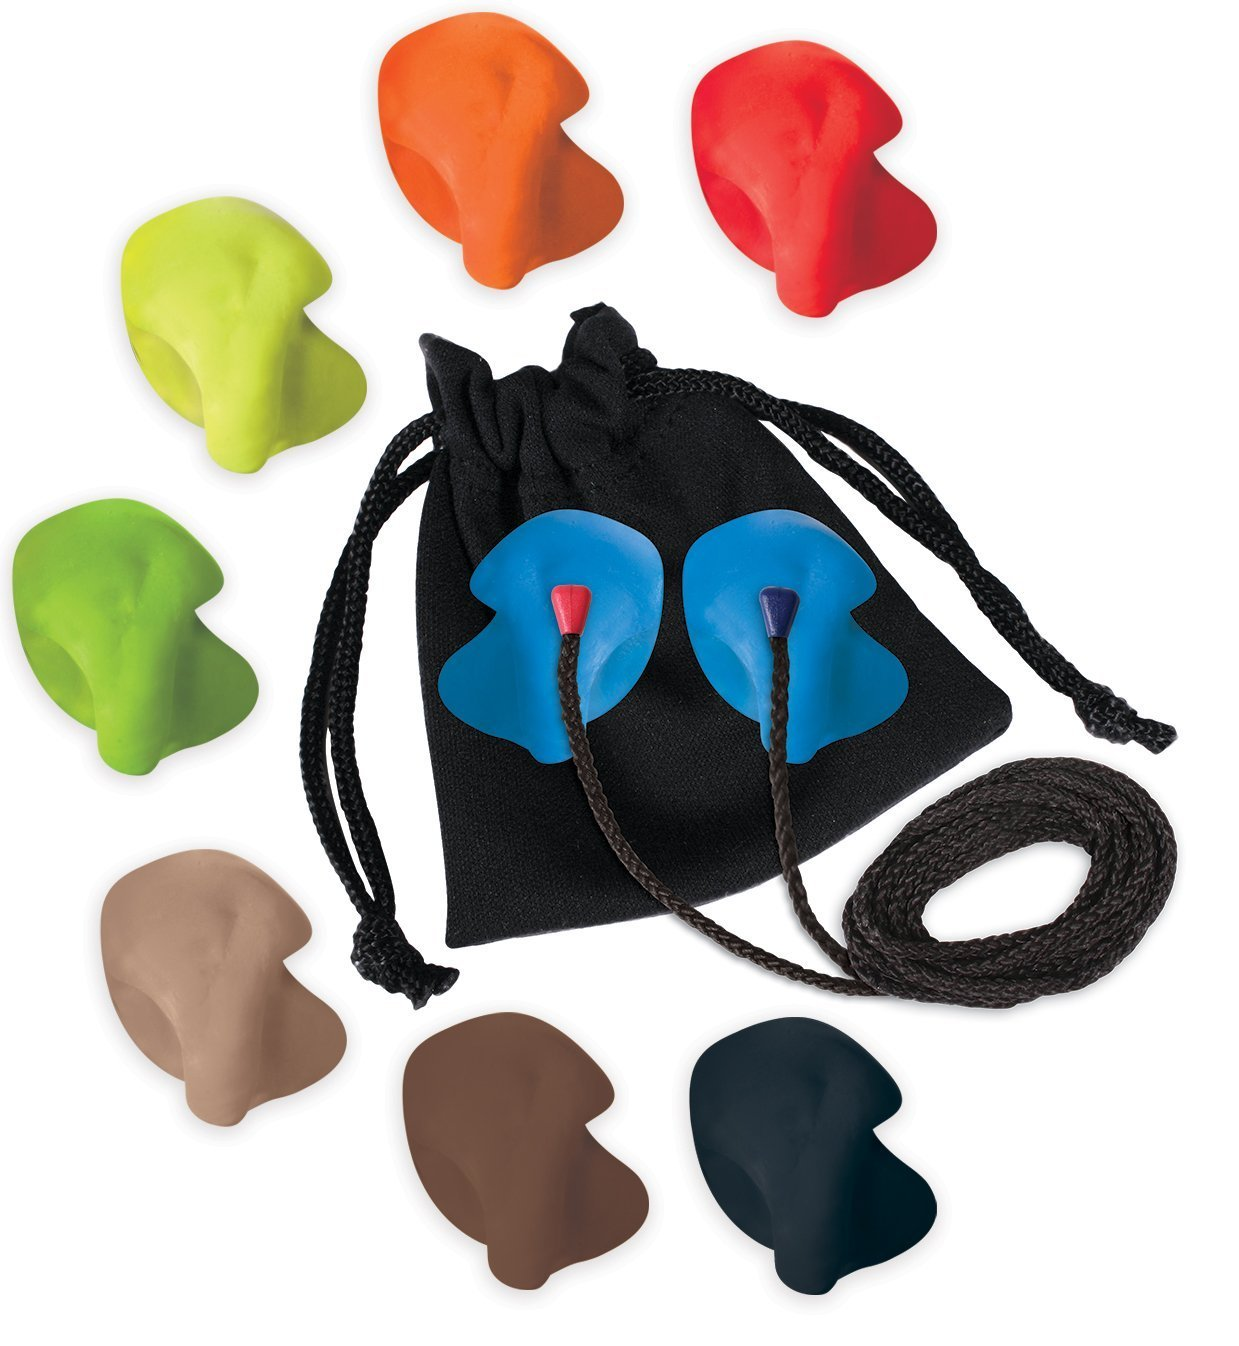 Re Ear DIY (Do-It-Yourself) Custom Molded Earplug Kit (Blue) with Cord by Re